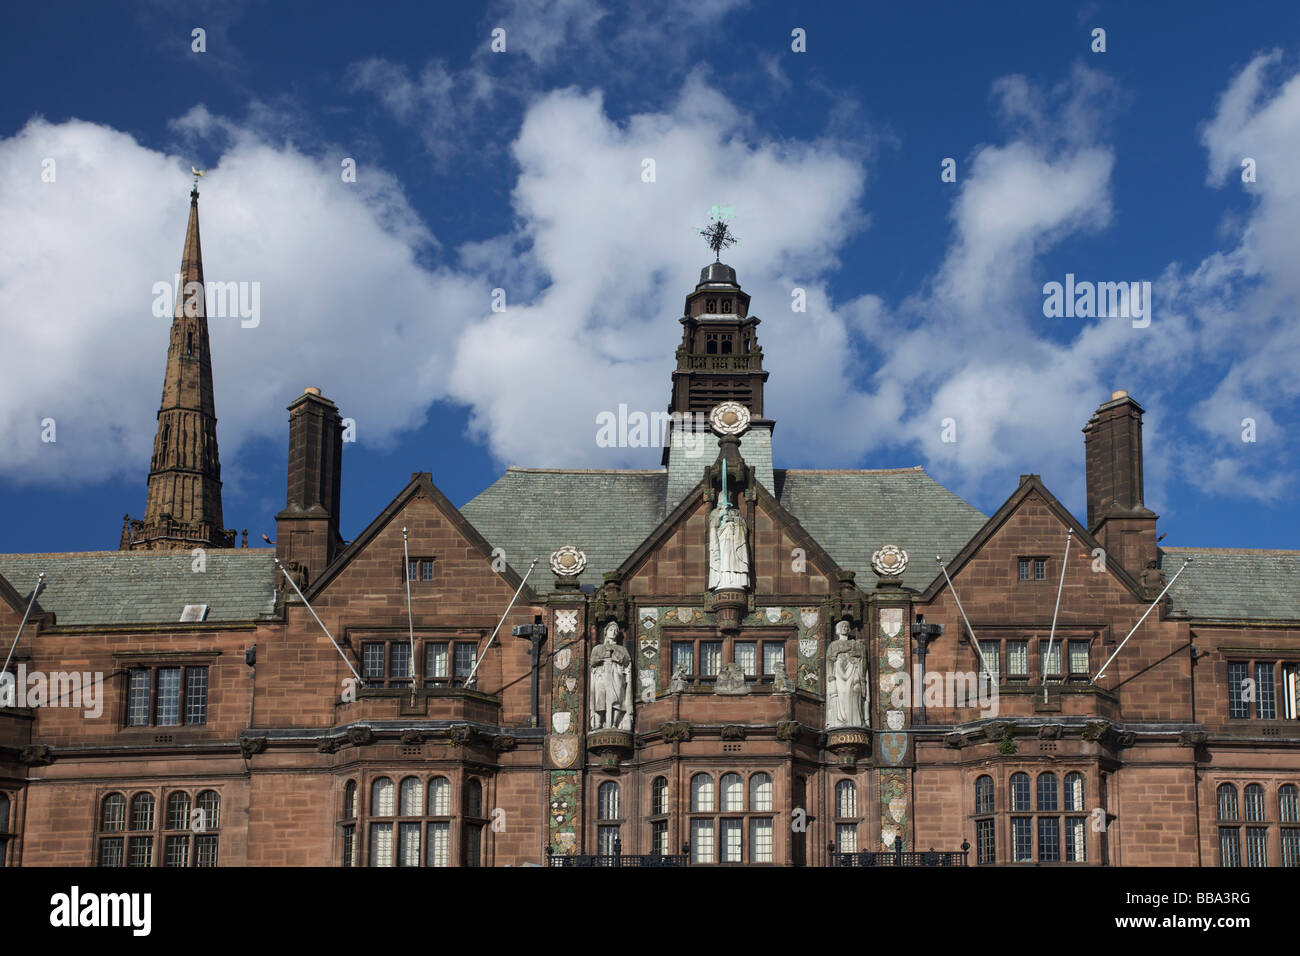 The Coventry City Council House in Coventry, West Midlands of England, United Kingdom Stock Photo